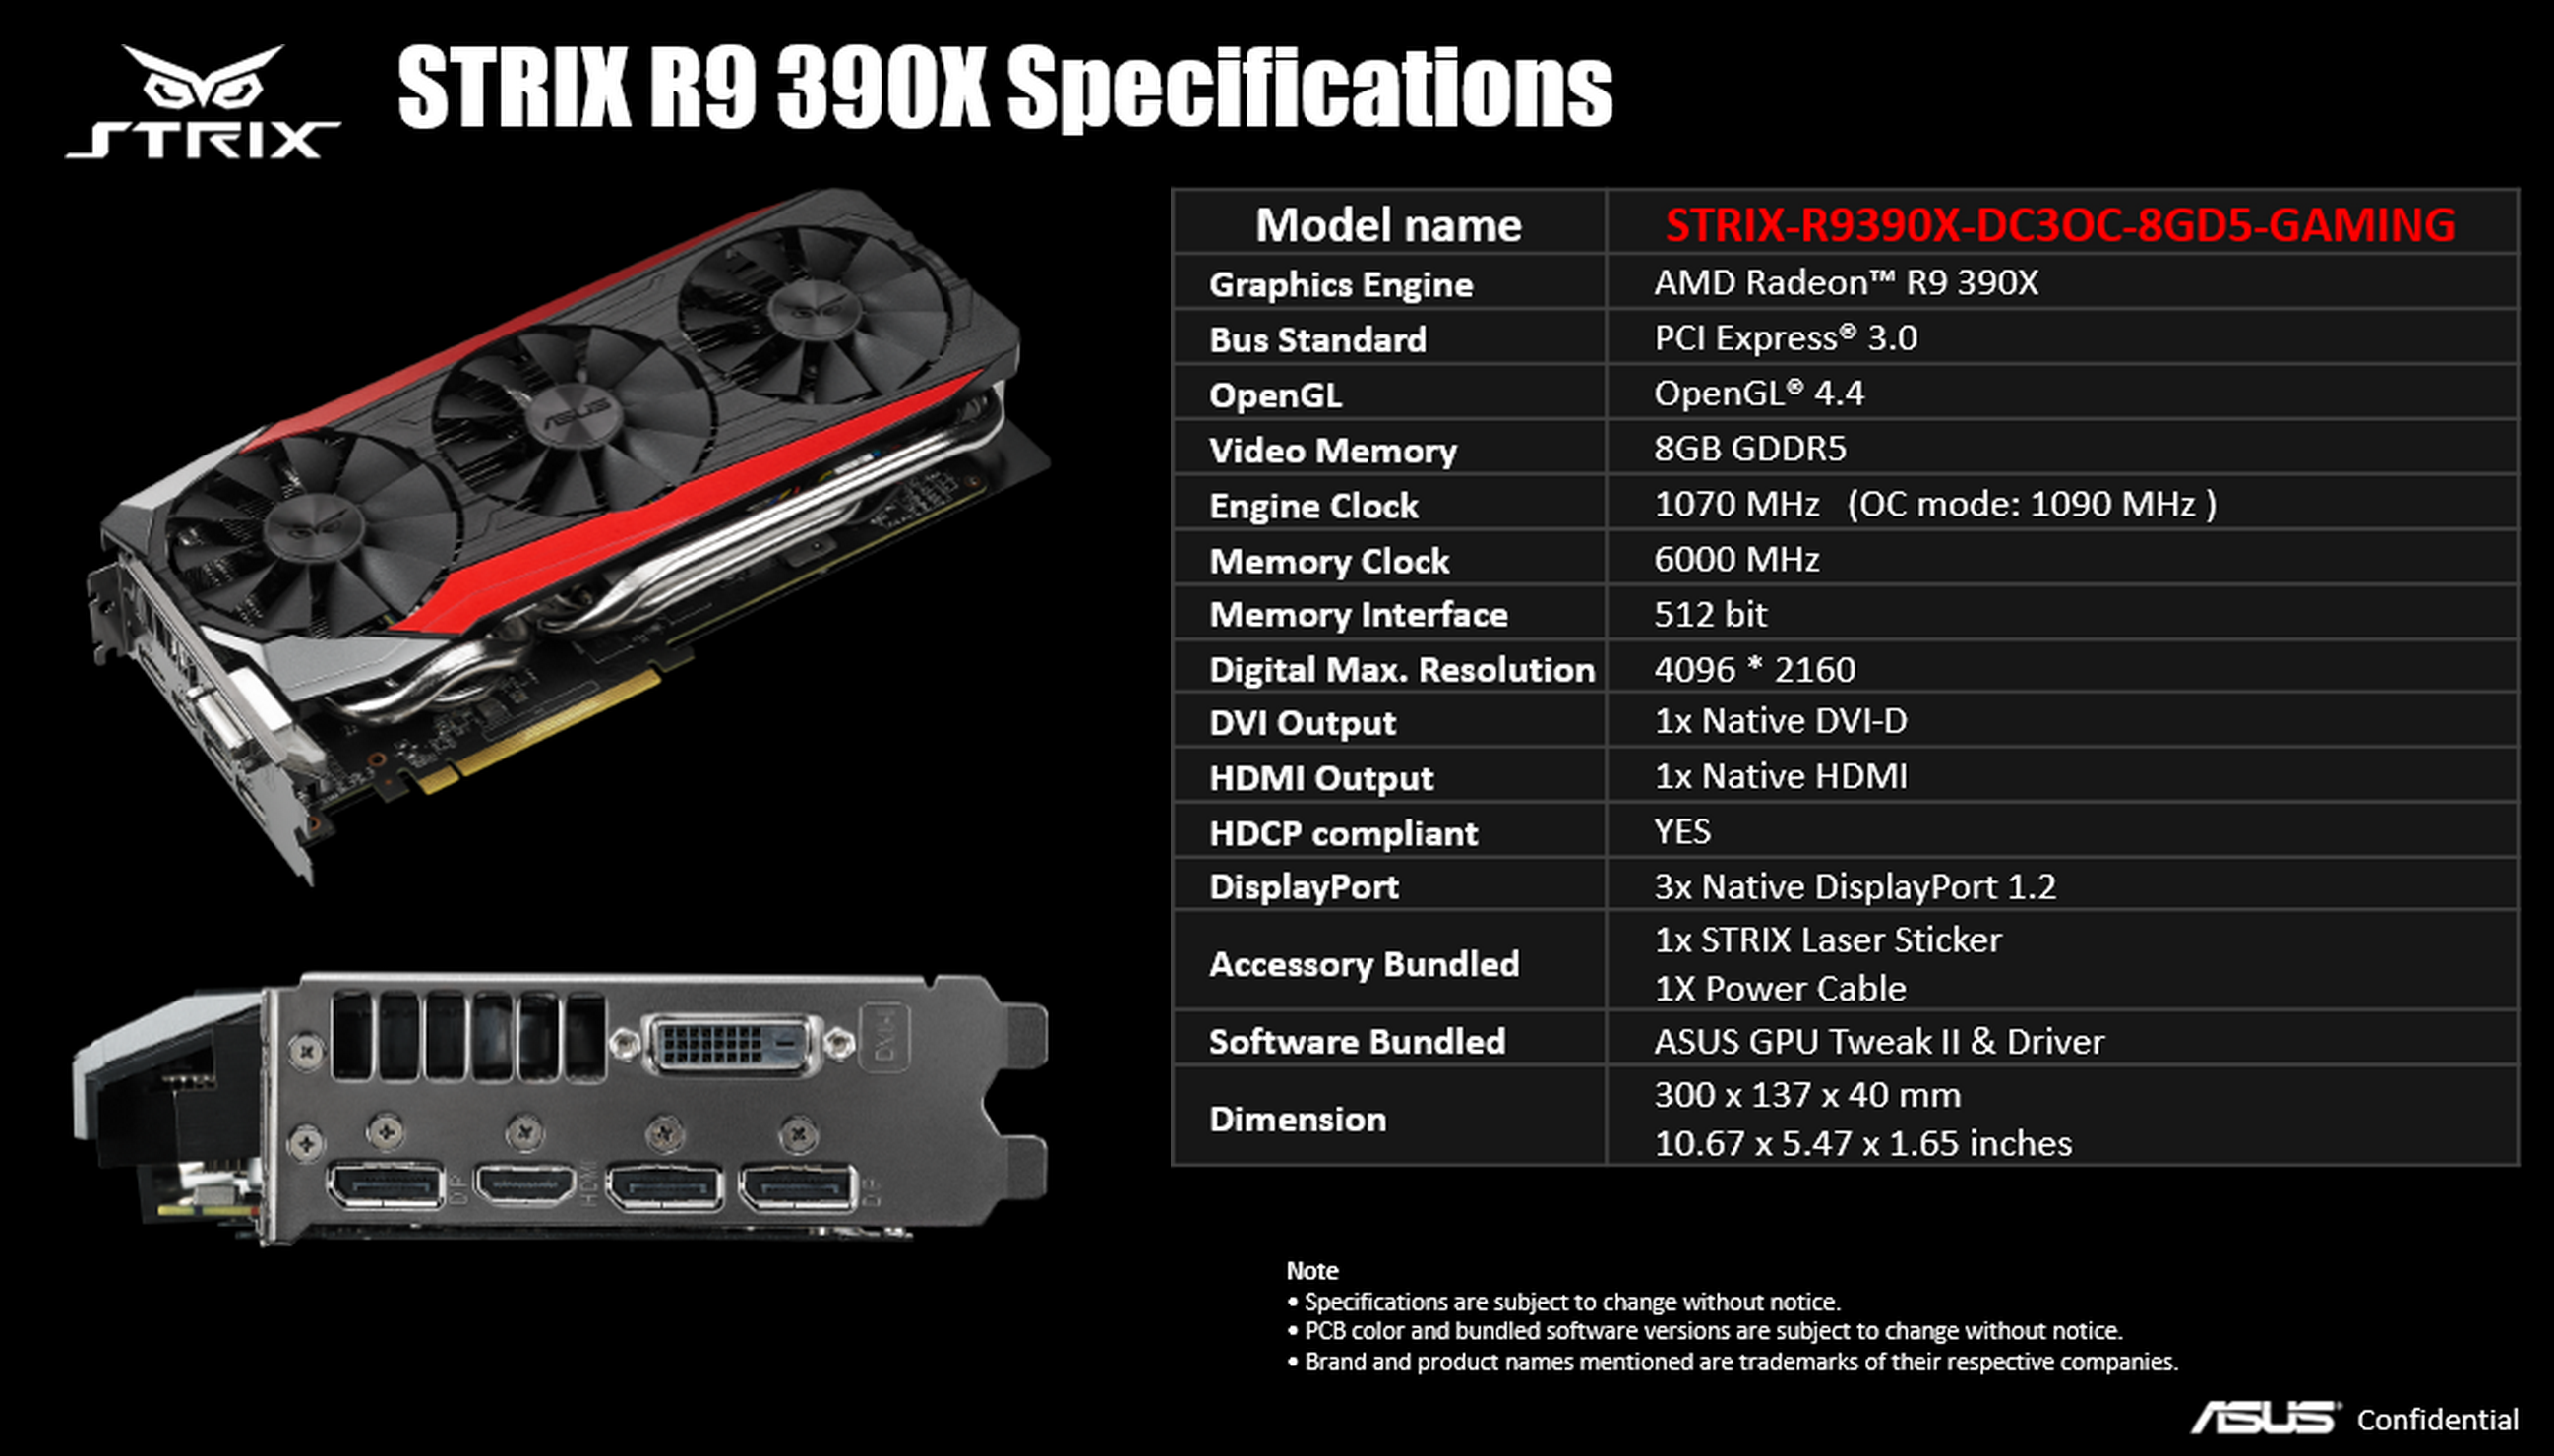 Asus Strix Radeon R9 390X review: Keeping up with the high